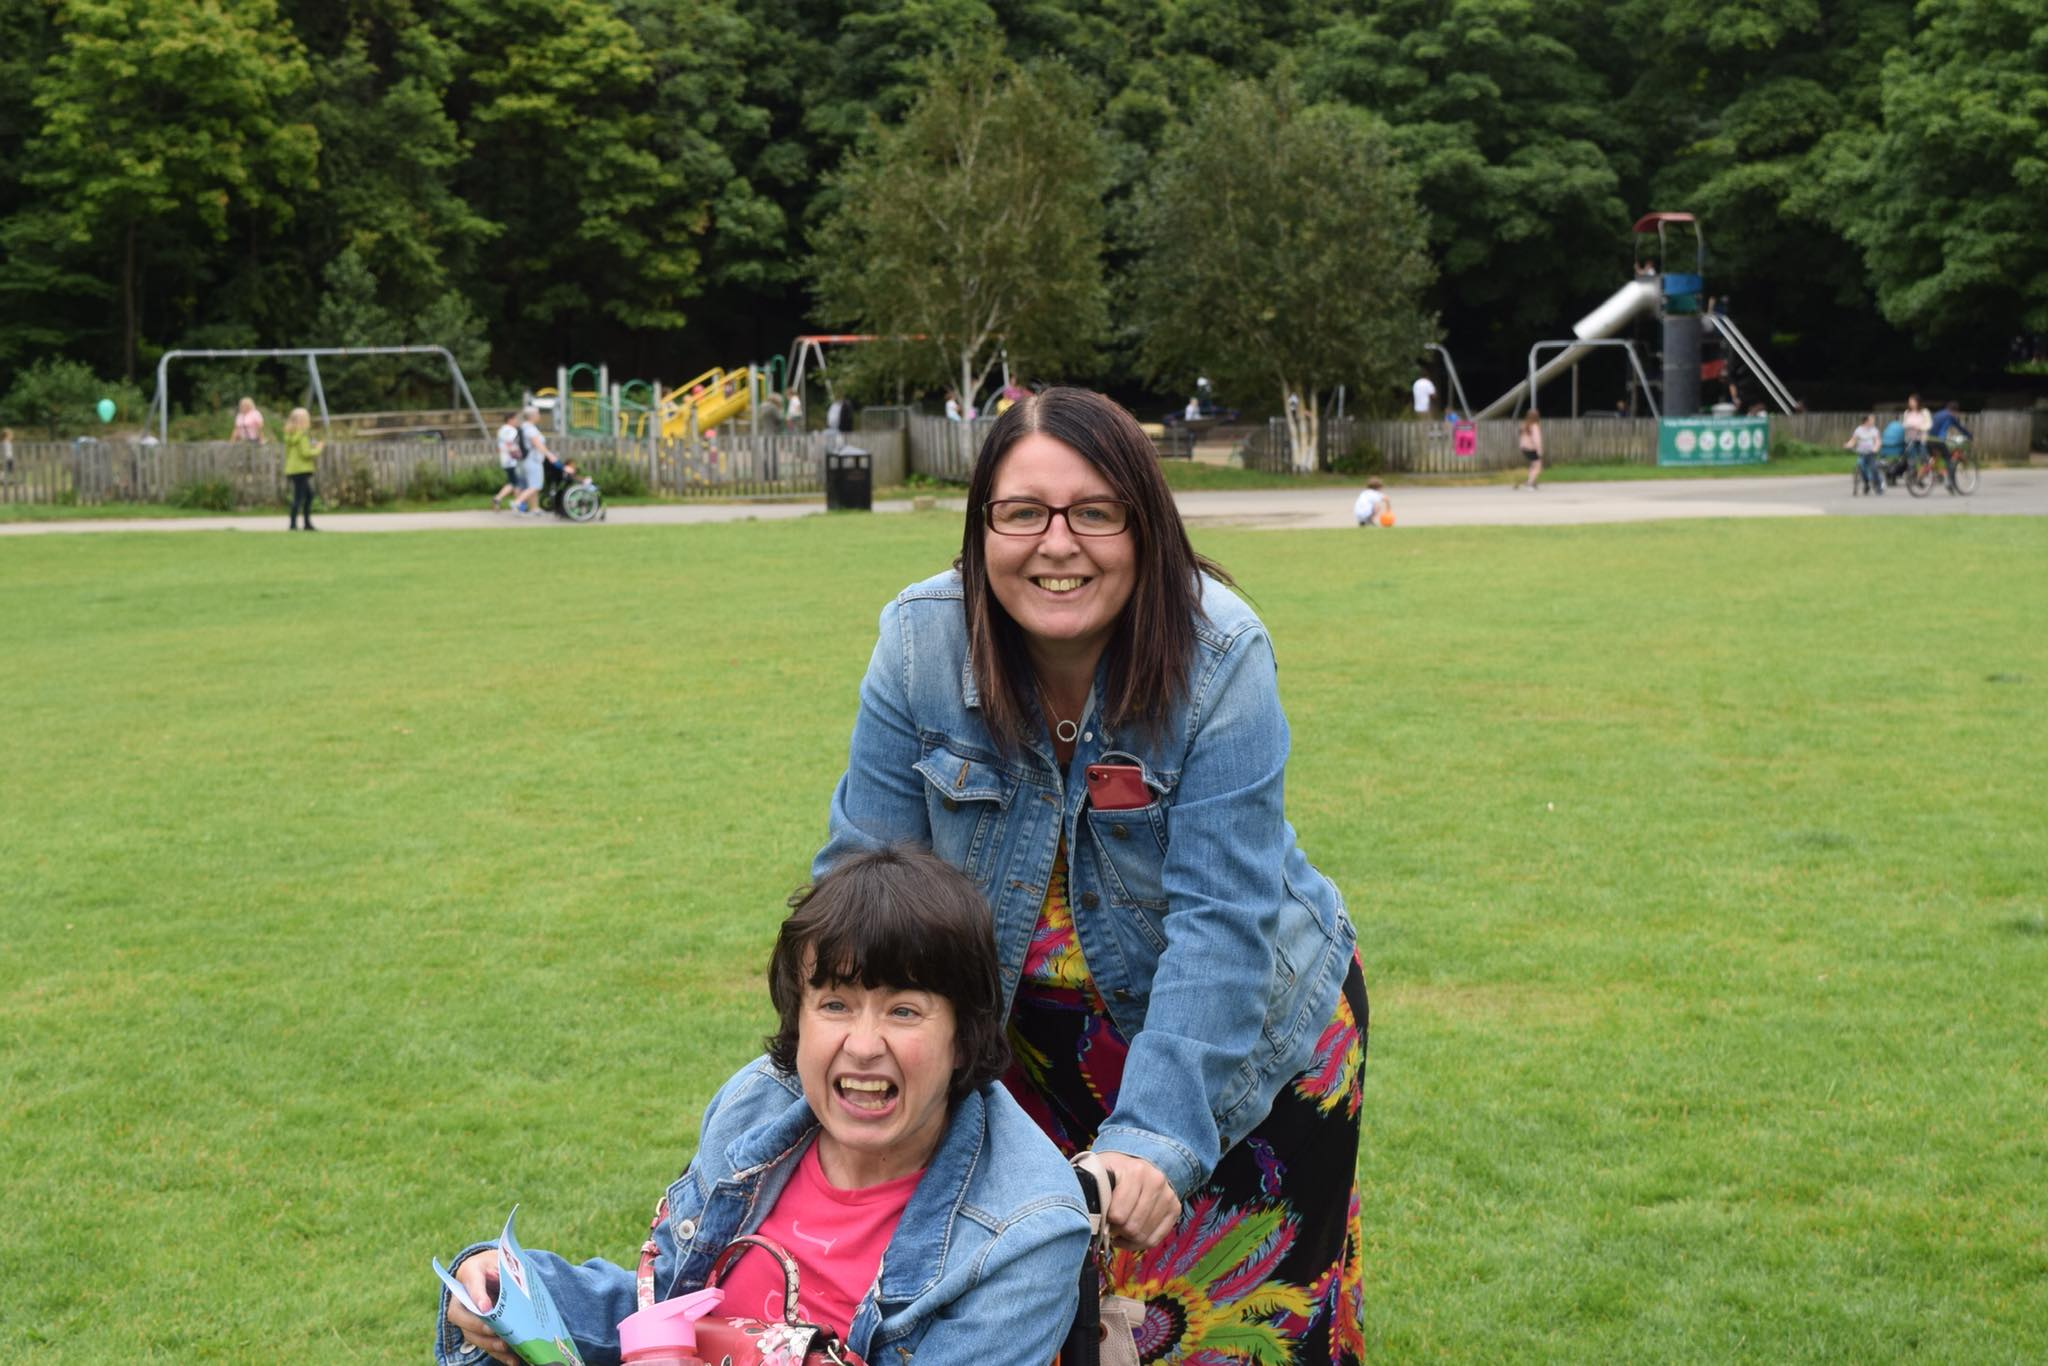 Two ladies smile for a photo in a park. The lady in the front is in a wheelchair. Both are wearing denim jackets.